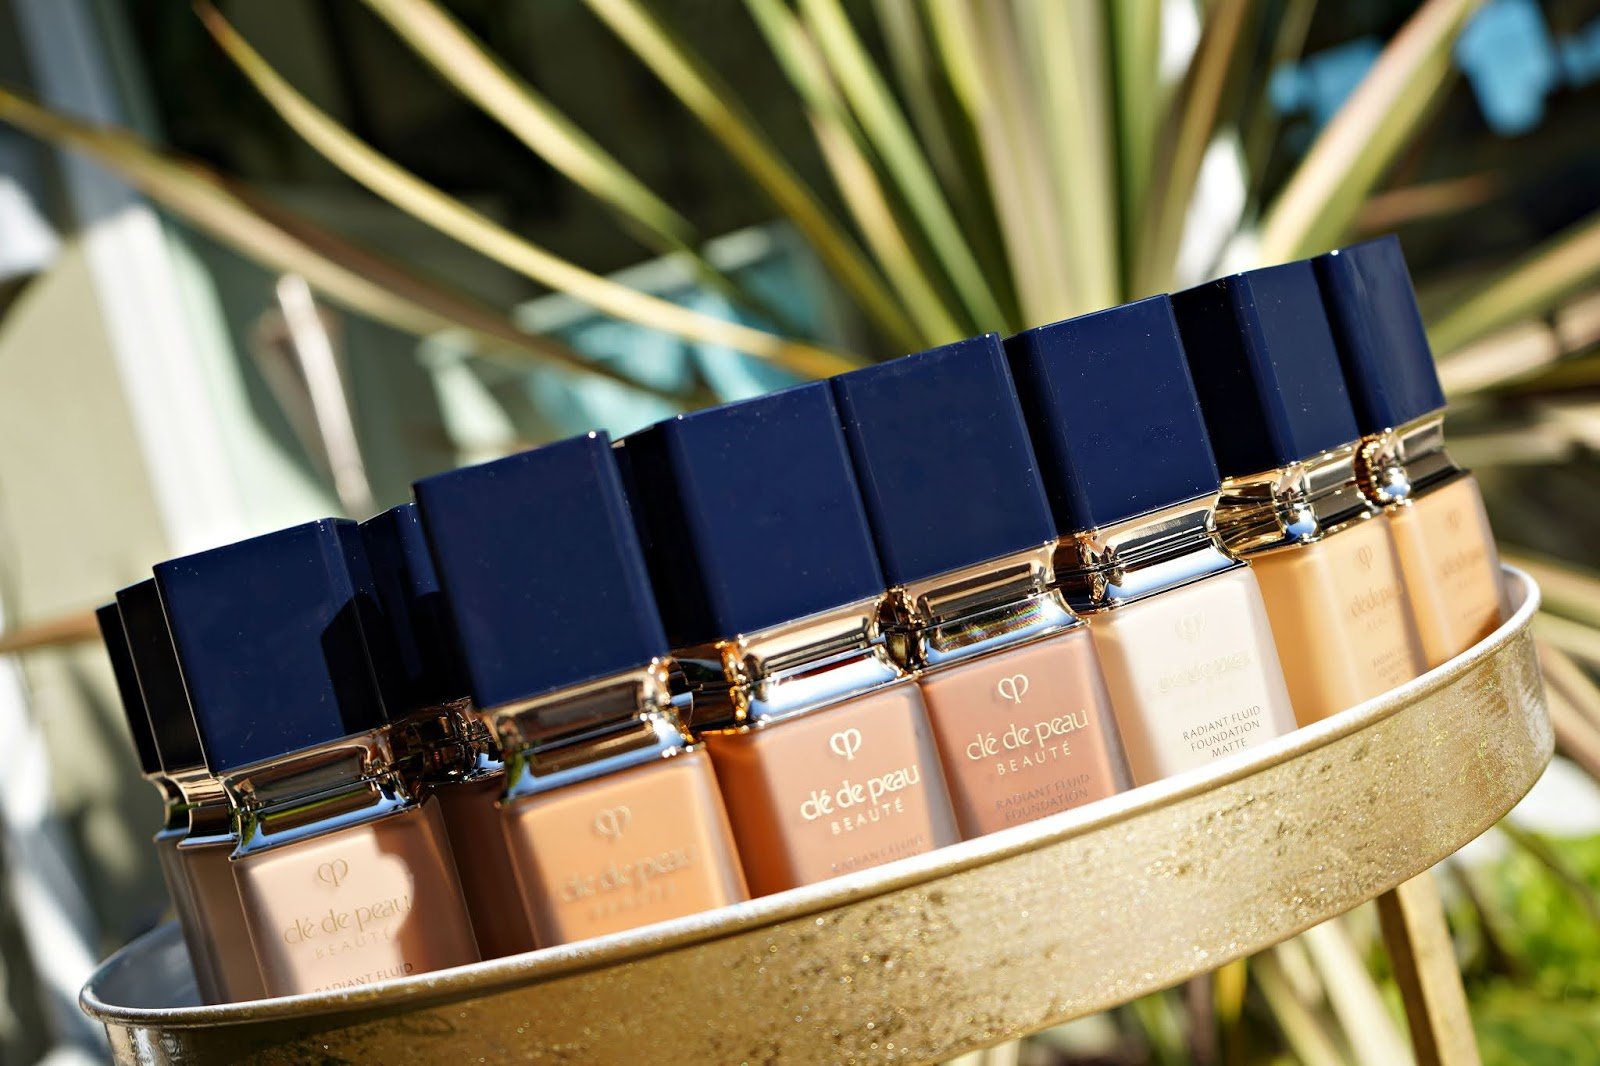 Clé de Peau Beauté Radiant Fluid Foundation Matte SPF 20 swatches